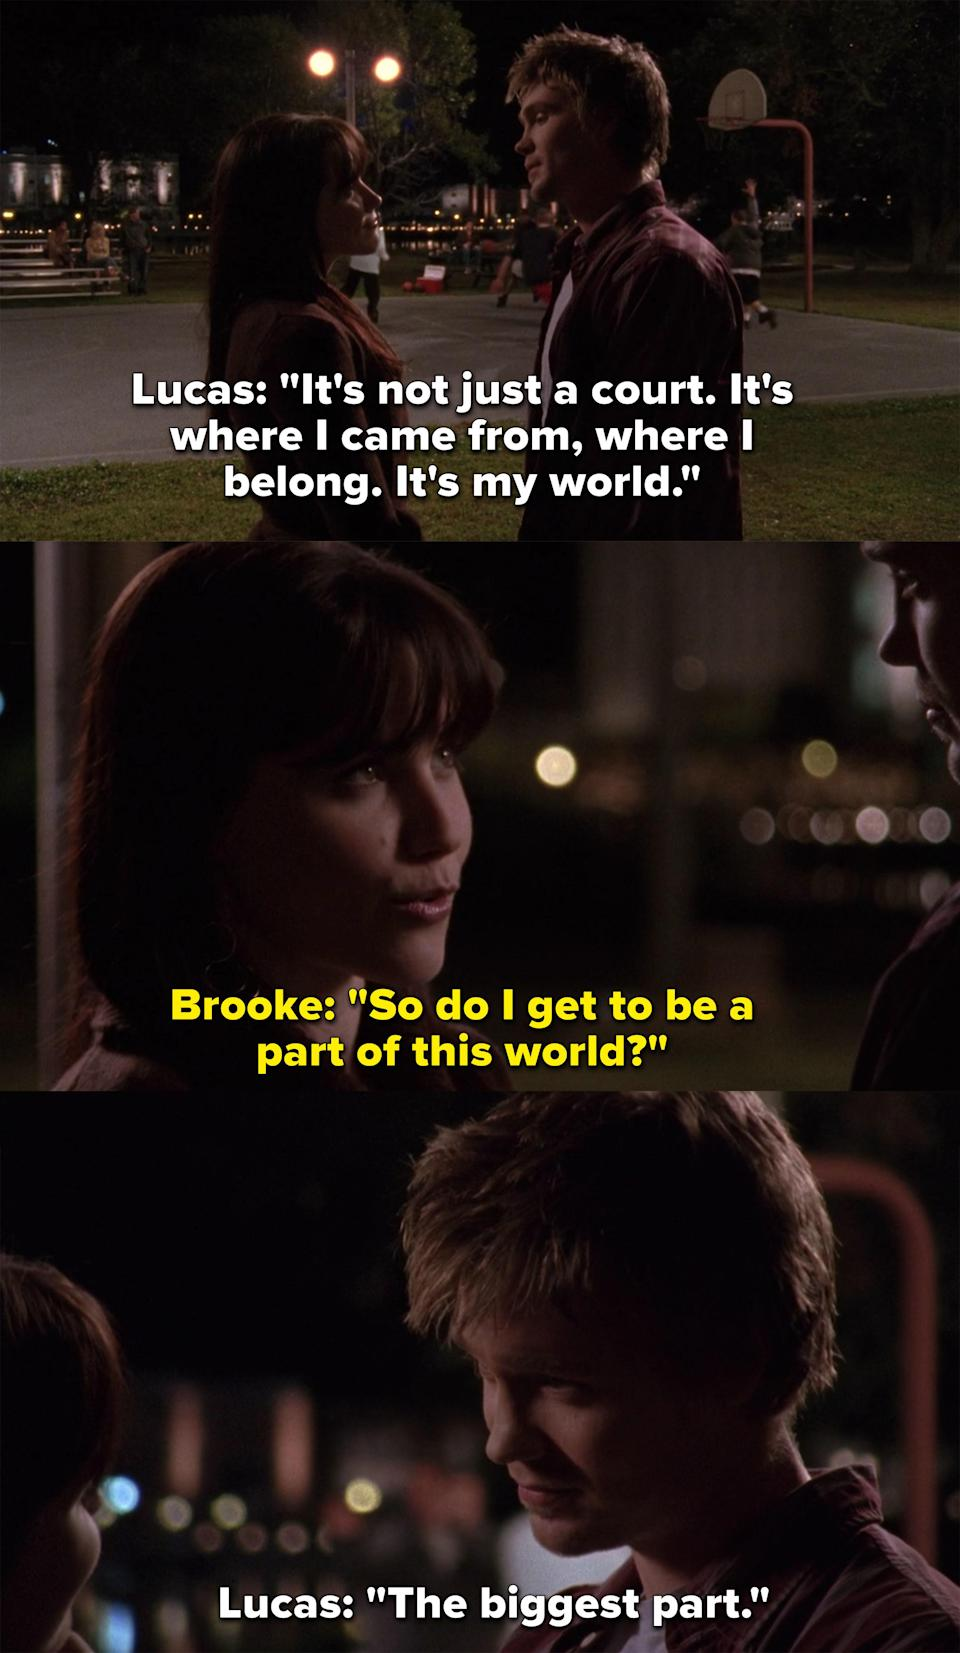 """Lucas says the court is his world, Brooke asks if she gets to be a part of this world, and Lucas replies, """"The biggest part"""""""